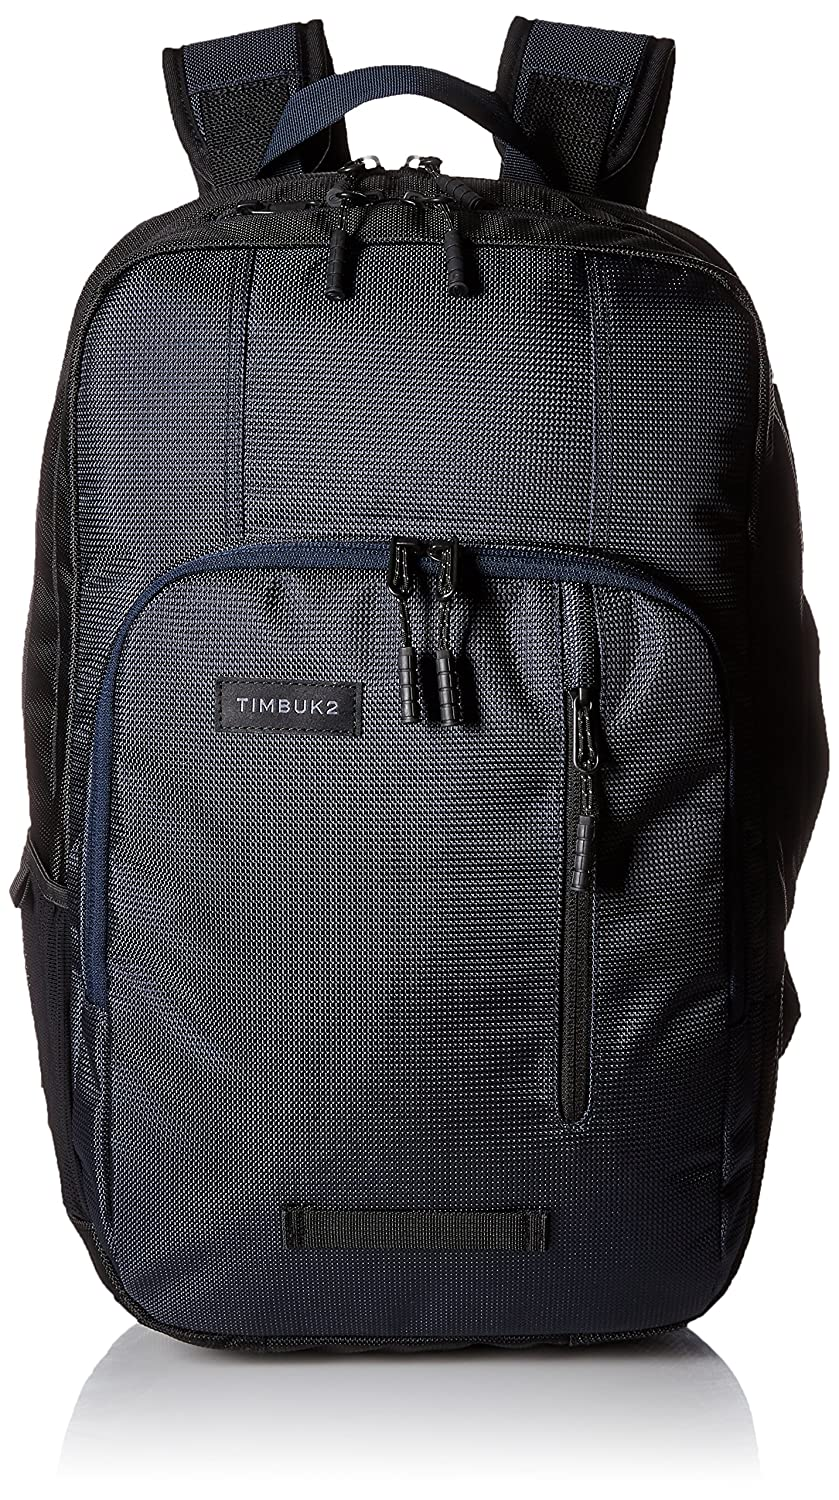 0d41dd9820 Buy Timbuk2 Uptown Travel Backpack Abyss One Size Online at Low Prices in  India - Amazon.in